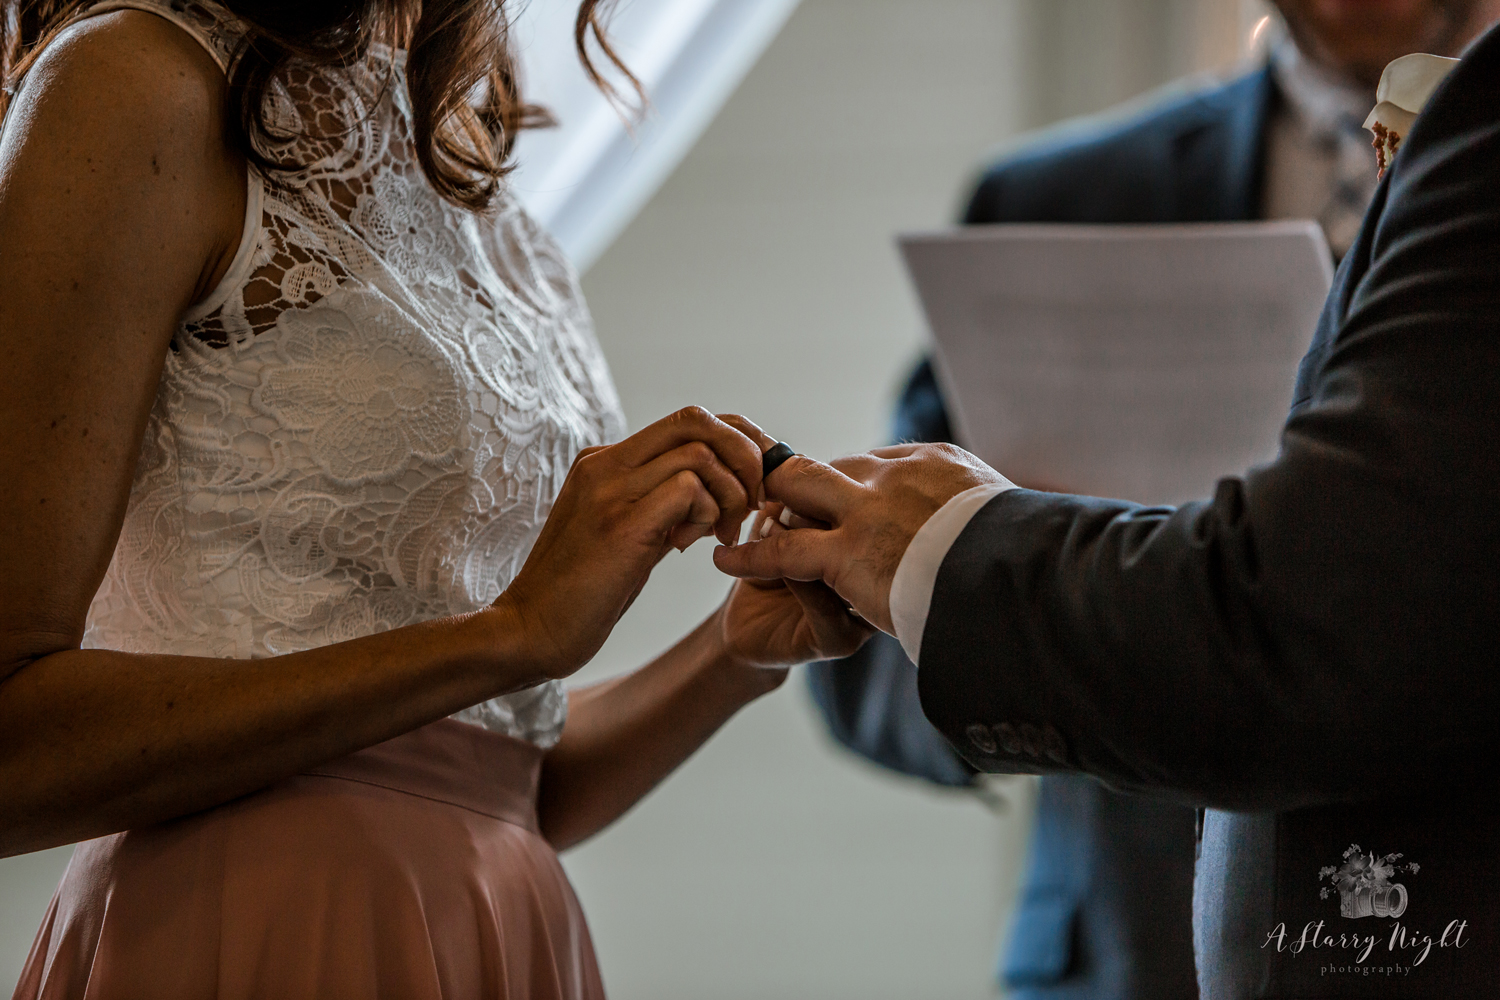 Couple exchanging wedding rings during their ceremony.